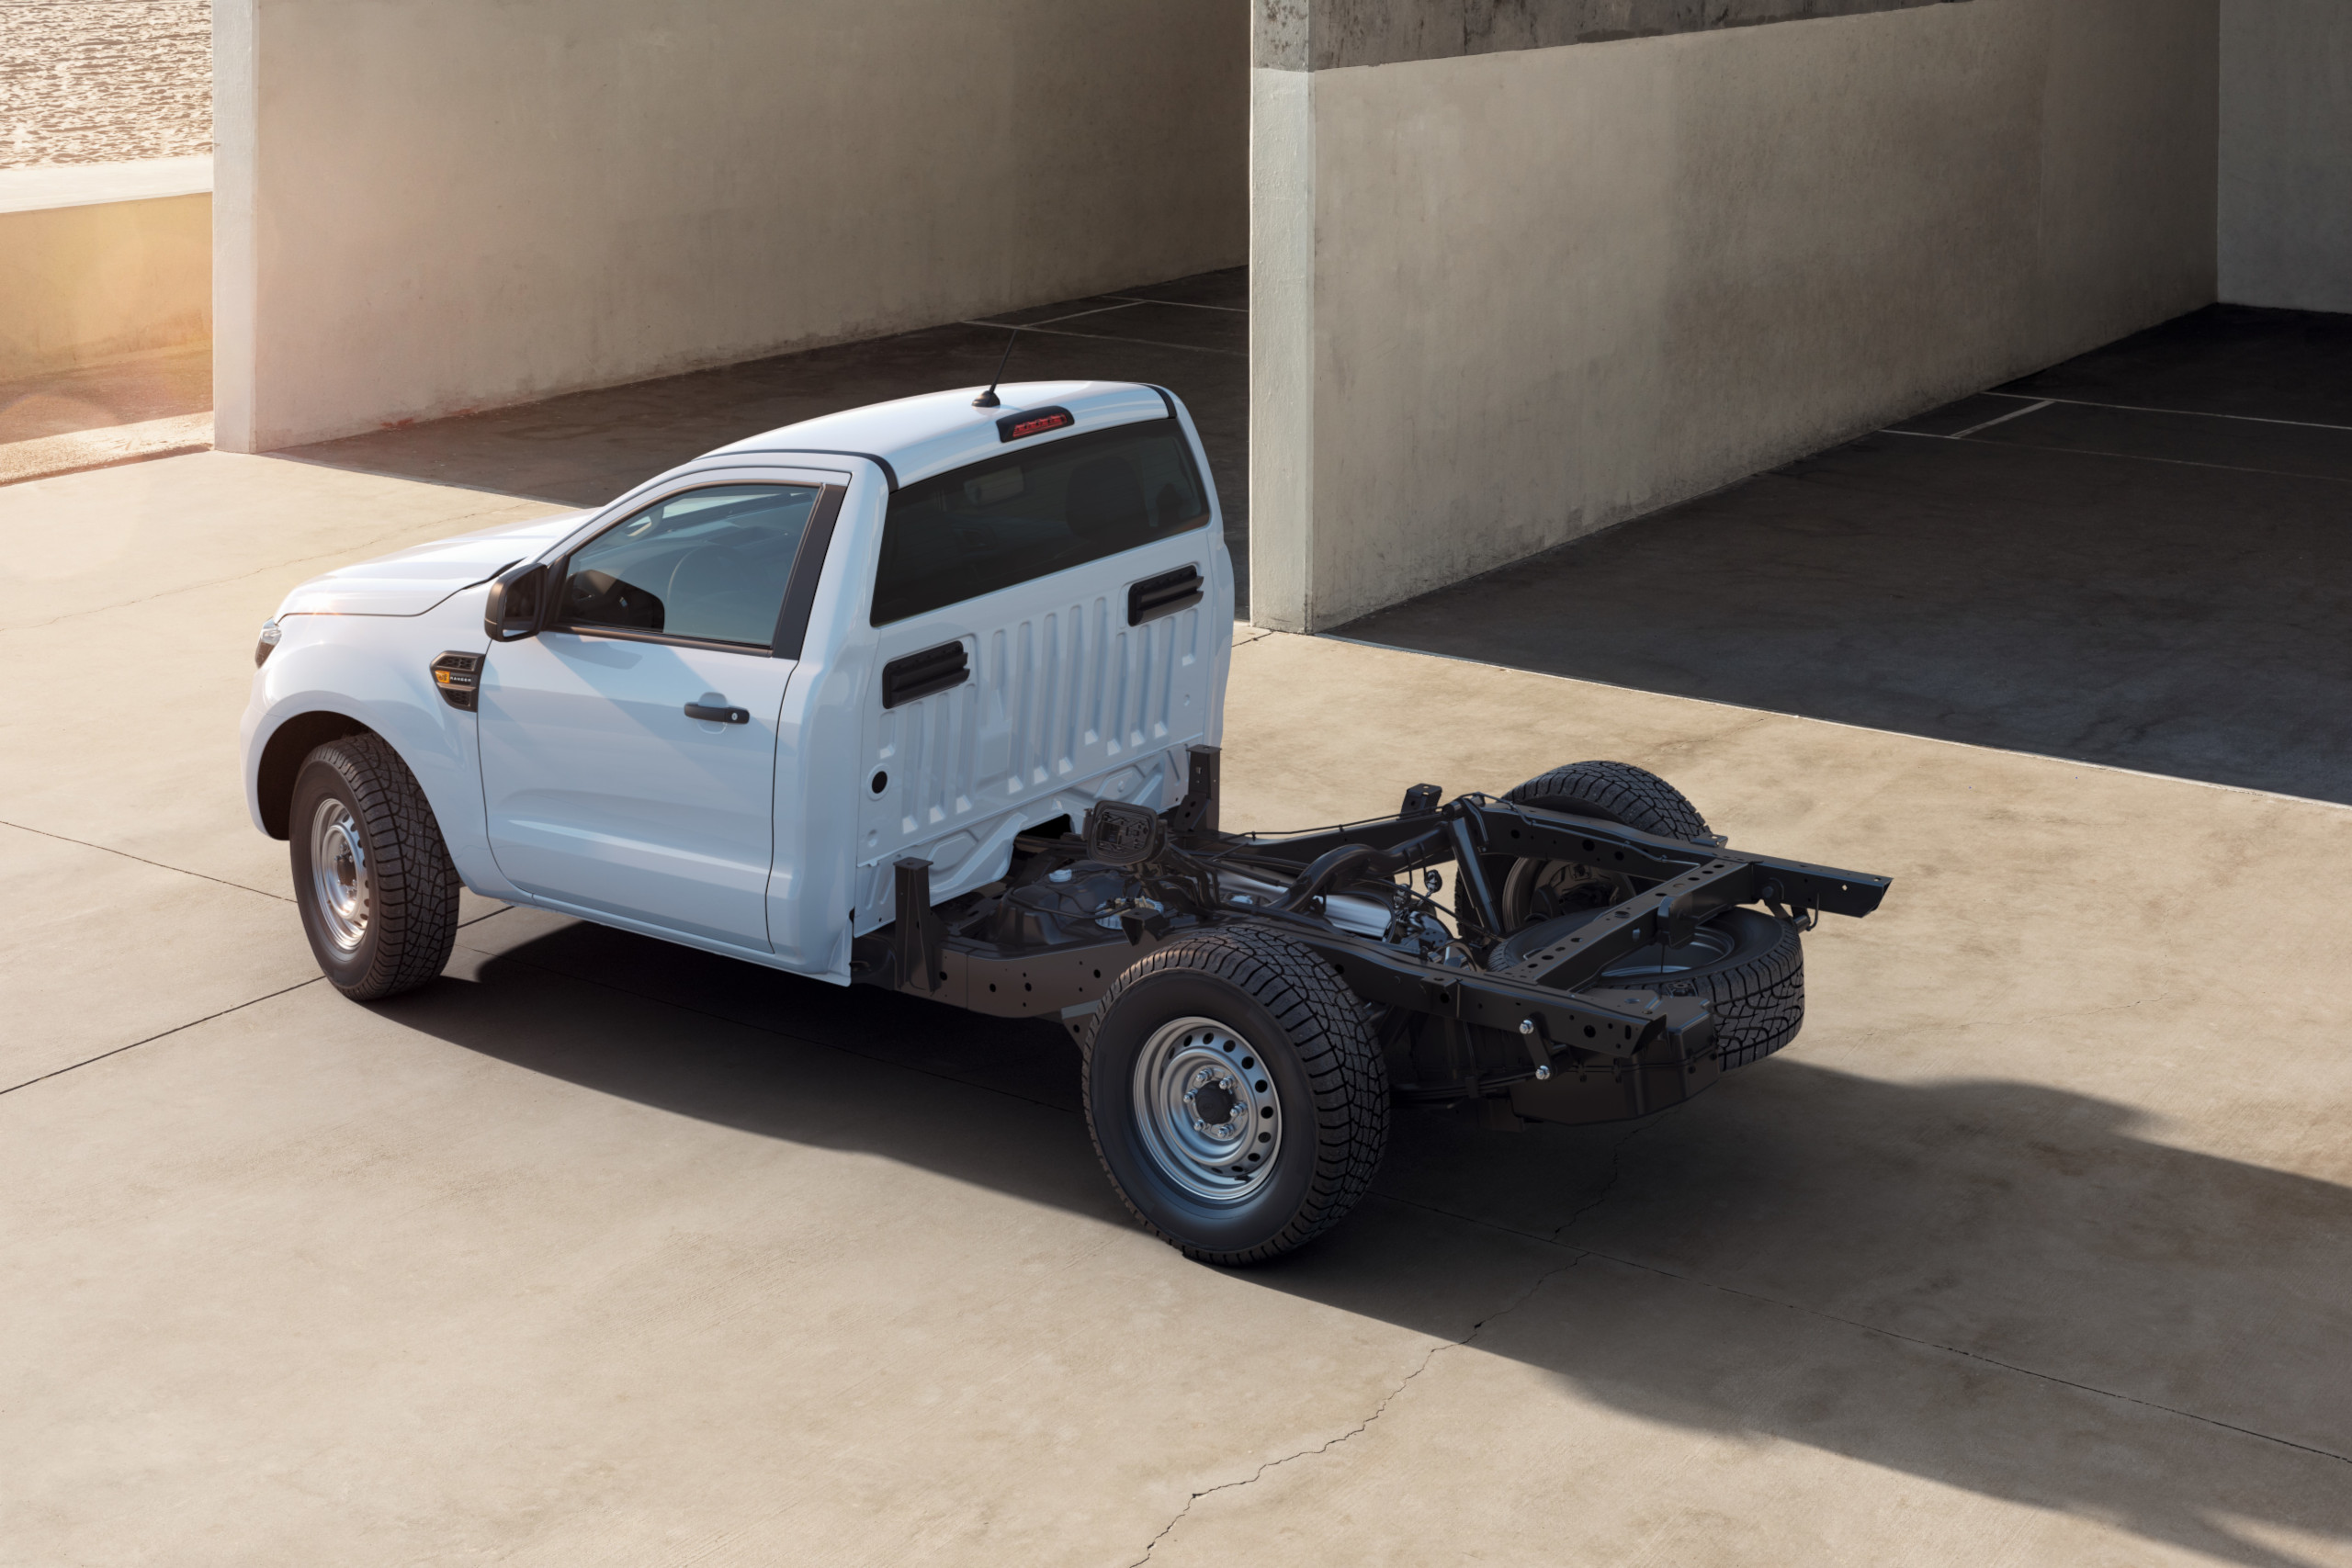 The Ford Ranger is Now Available as a Chassis Cab